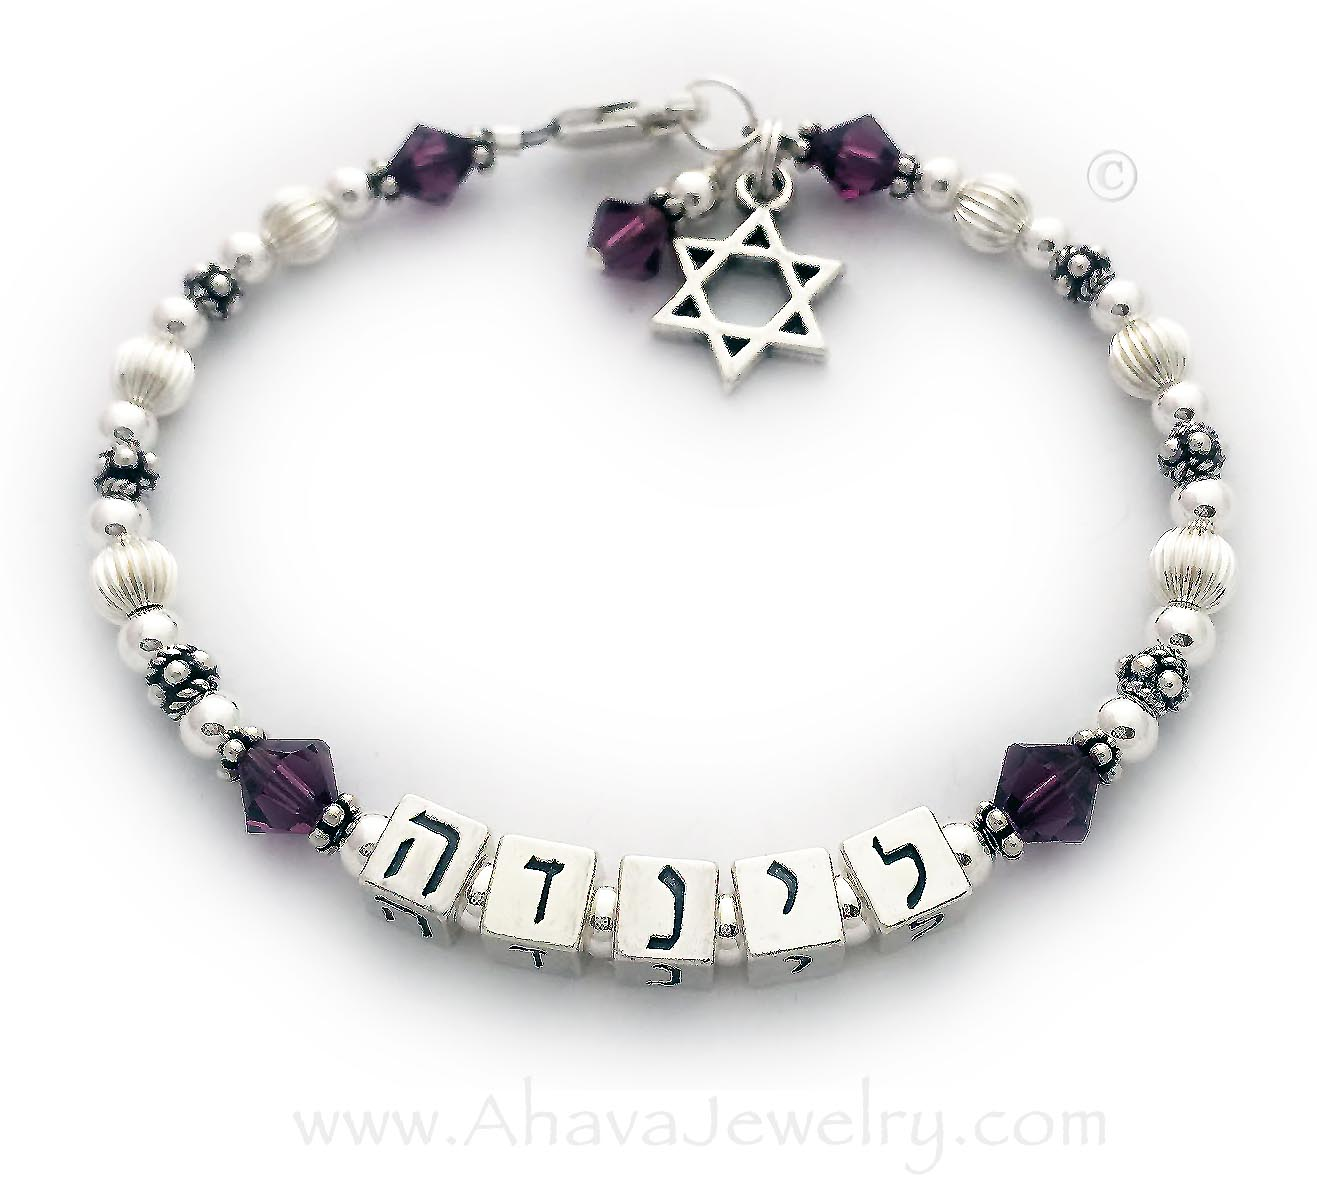 Linda in Hebrew AJ-S1  with February Birthstone Crystals and a lobster claw clasp. They added 2 charms: Star of David and Birthstone Crystal Dangle.